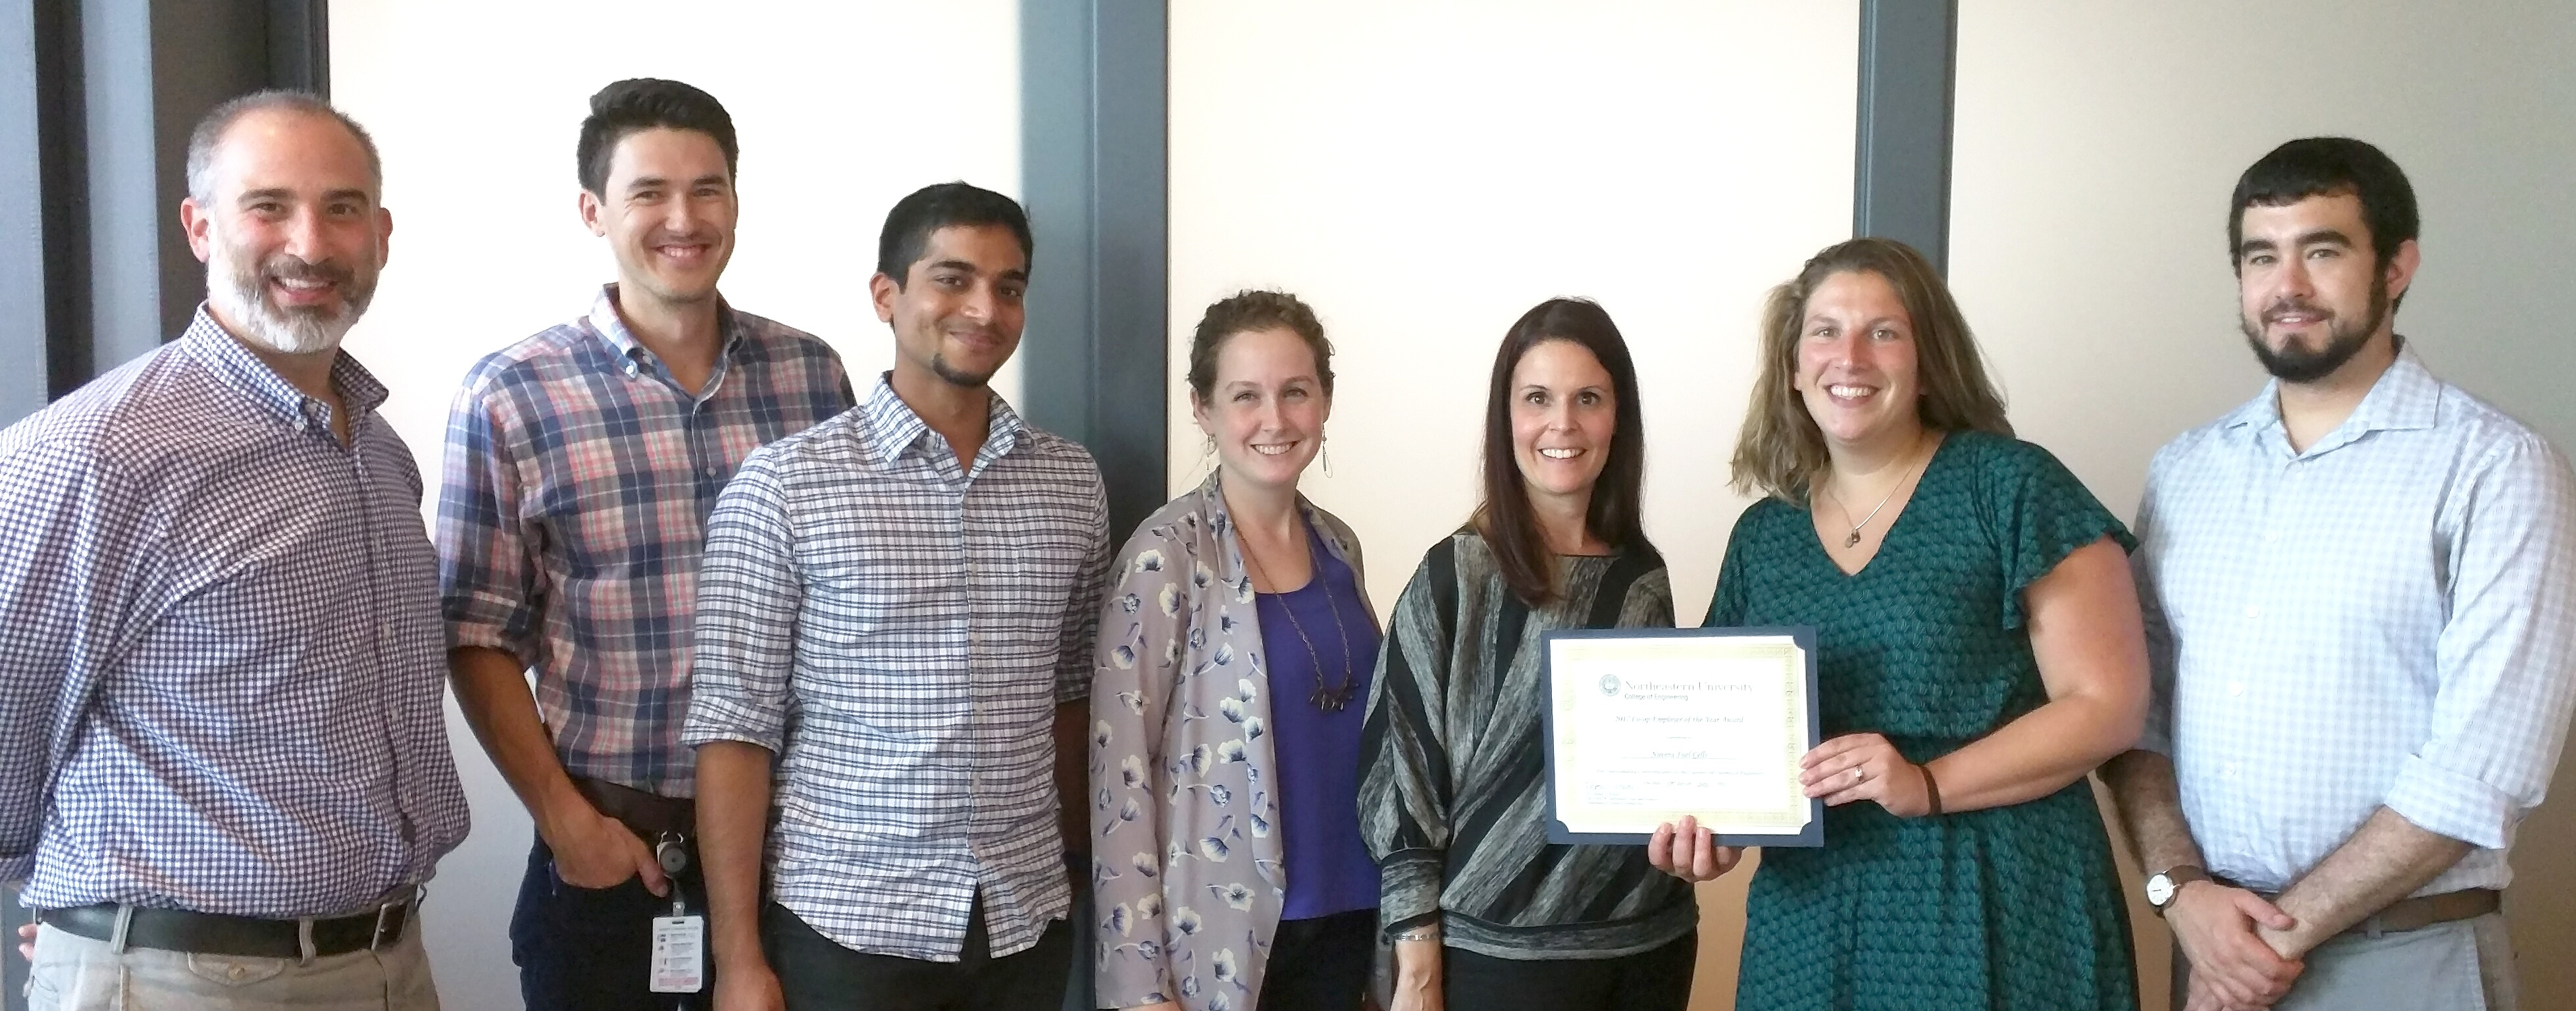 Nuvera Receives Co-op Employer of the Year Award from Northeastern University